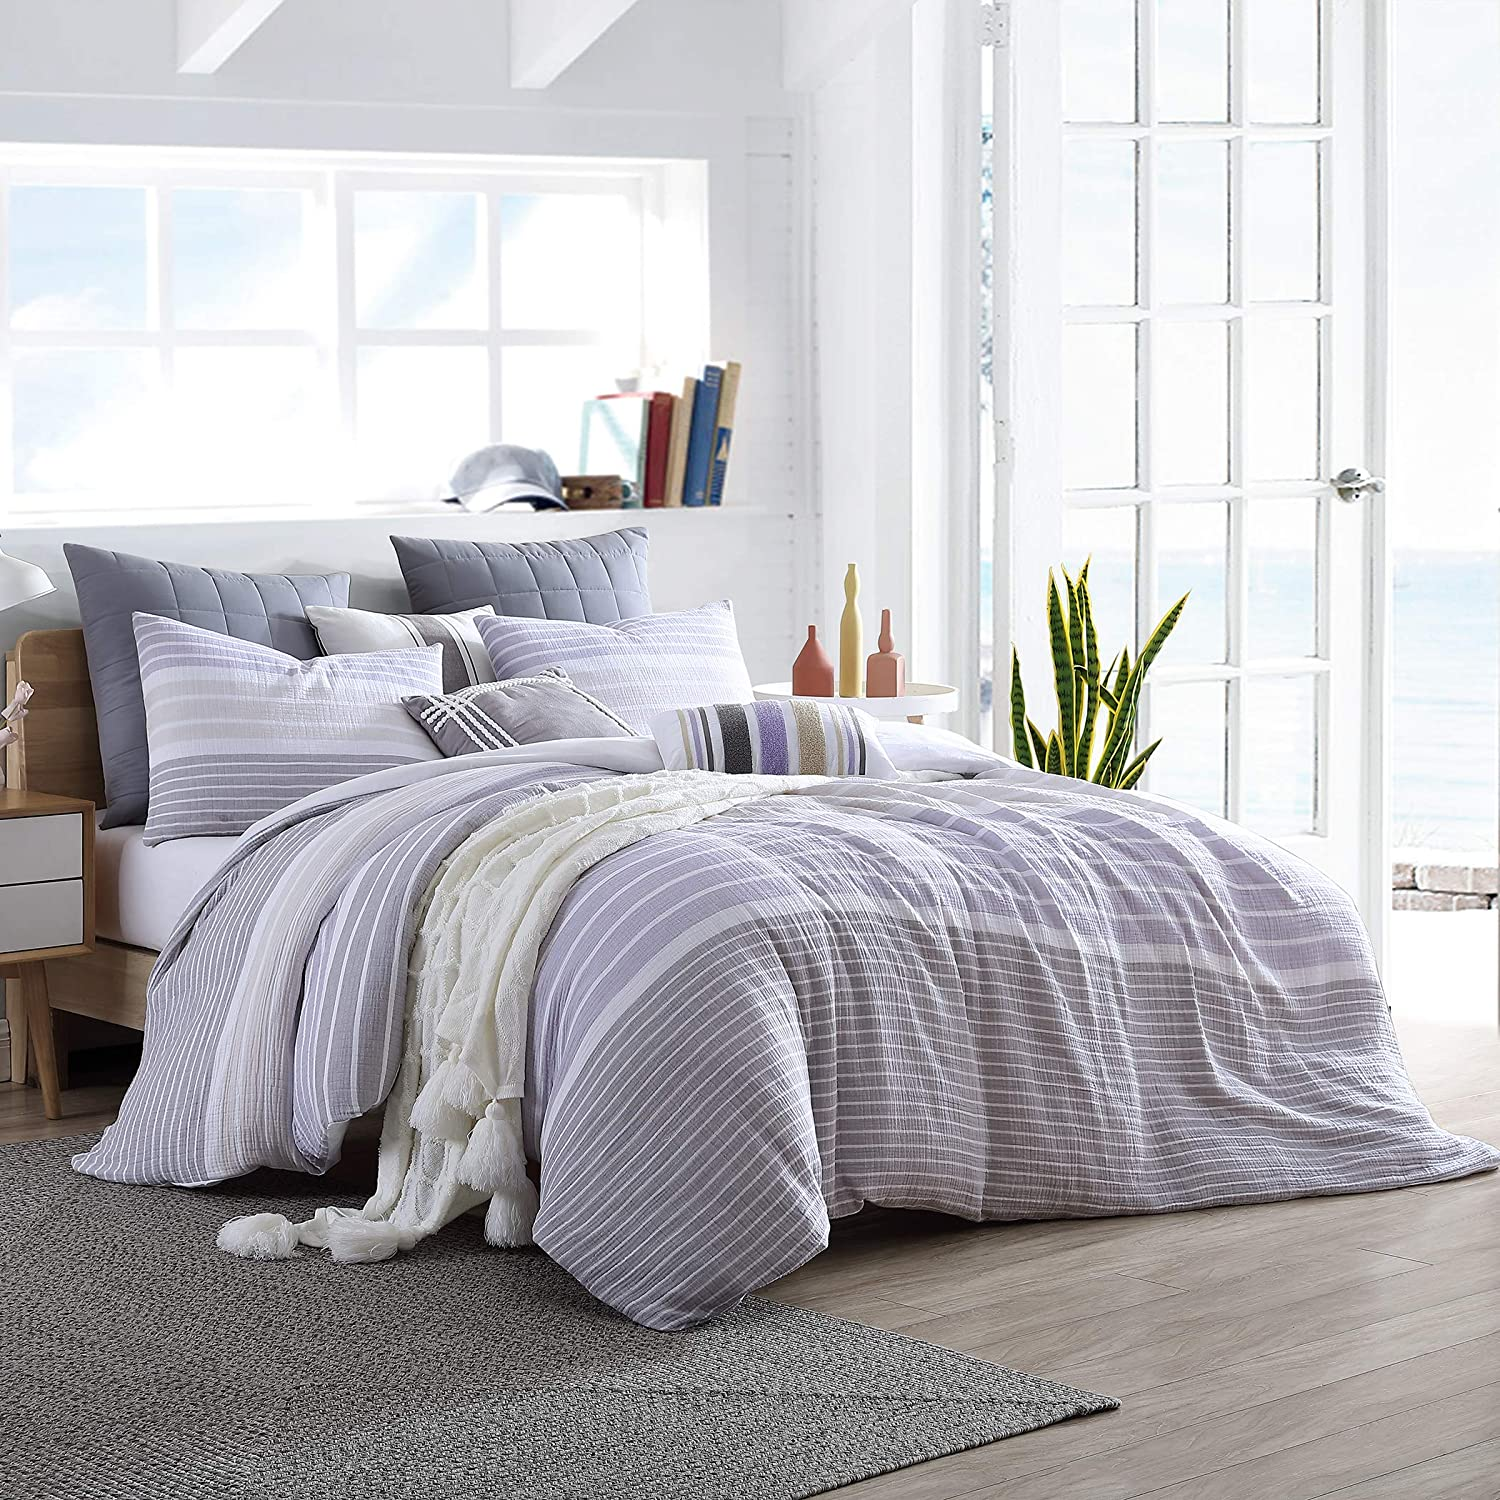 Swift Home Cordelia Prewashed Yarn-Dyed 100% Cotton Gauze Stripe Duvet Cover Set, Oeko-Tex Certified, Ultra Soft and Breathable, Button Closure, All Season - Purple, King/Cal King (104